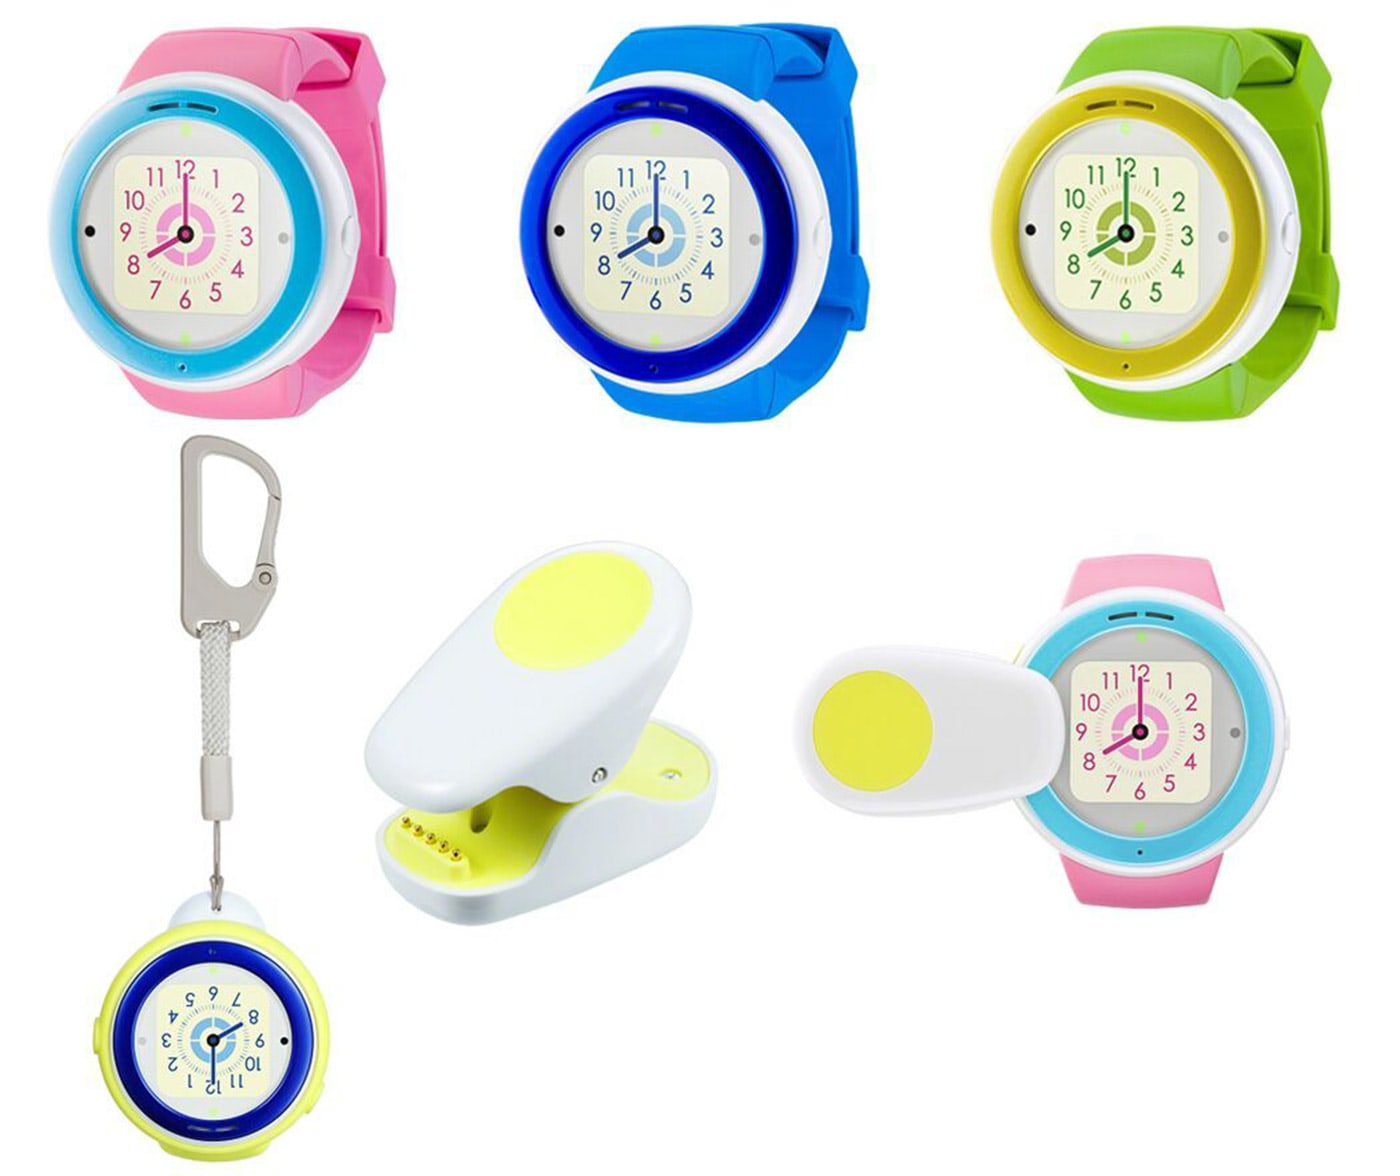 Parents can call their kids directly on this smartwatch in Japan